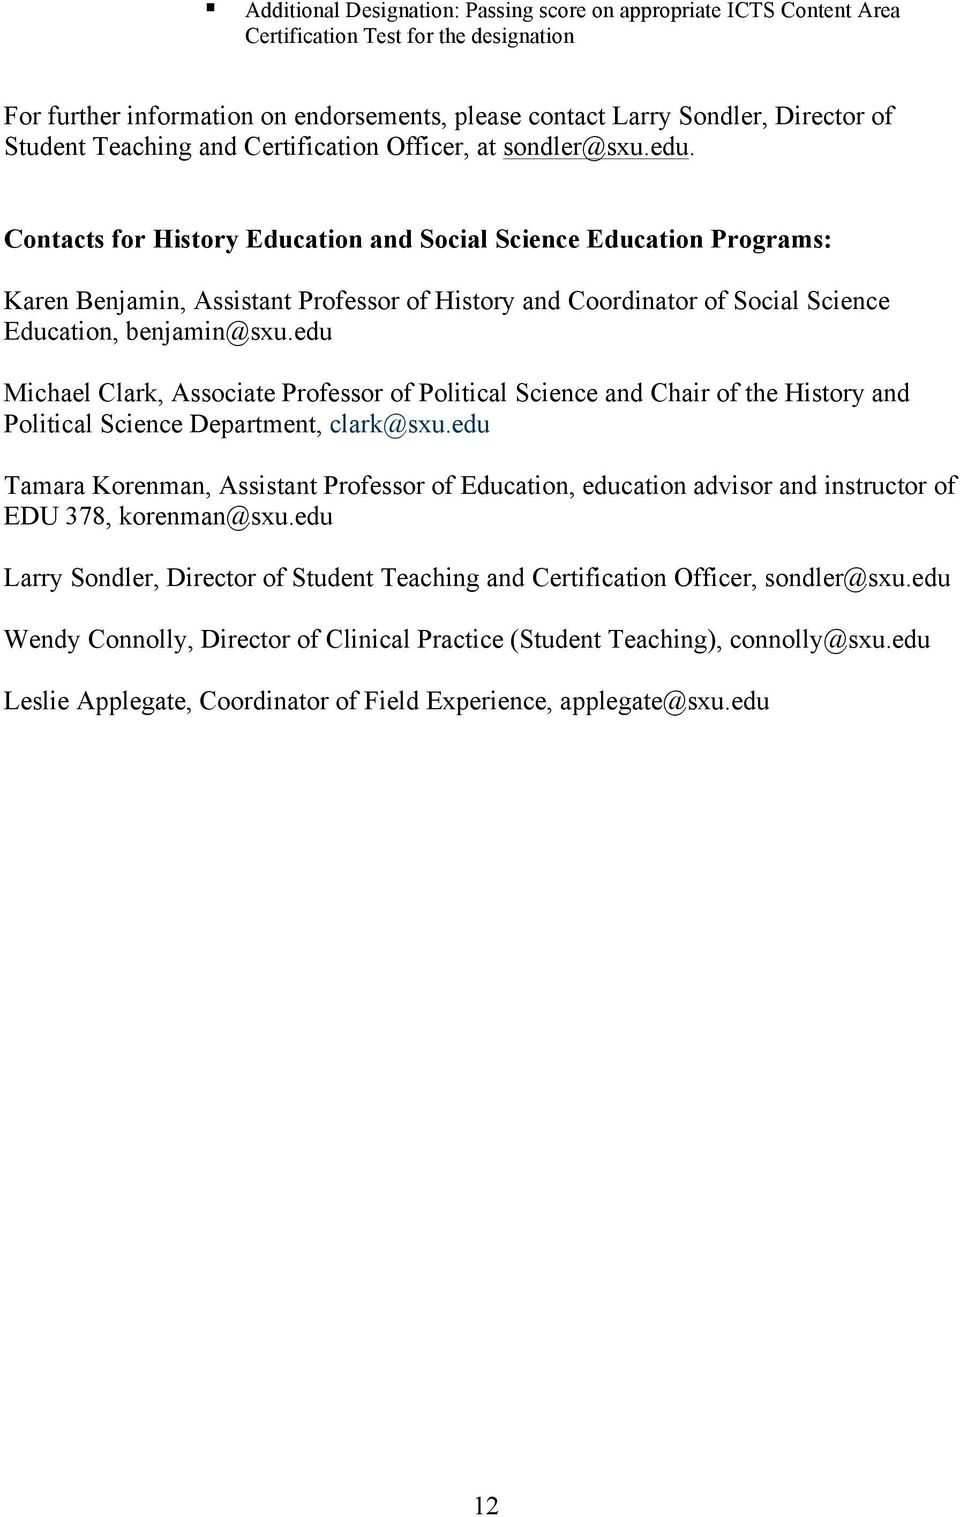 Contacts for History Education and Social Science Education Programs: Karen Benjamin, Assistant Professor of History and Coordinator of Social Science Education, benjamin@sxu.